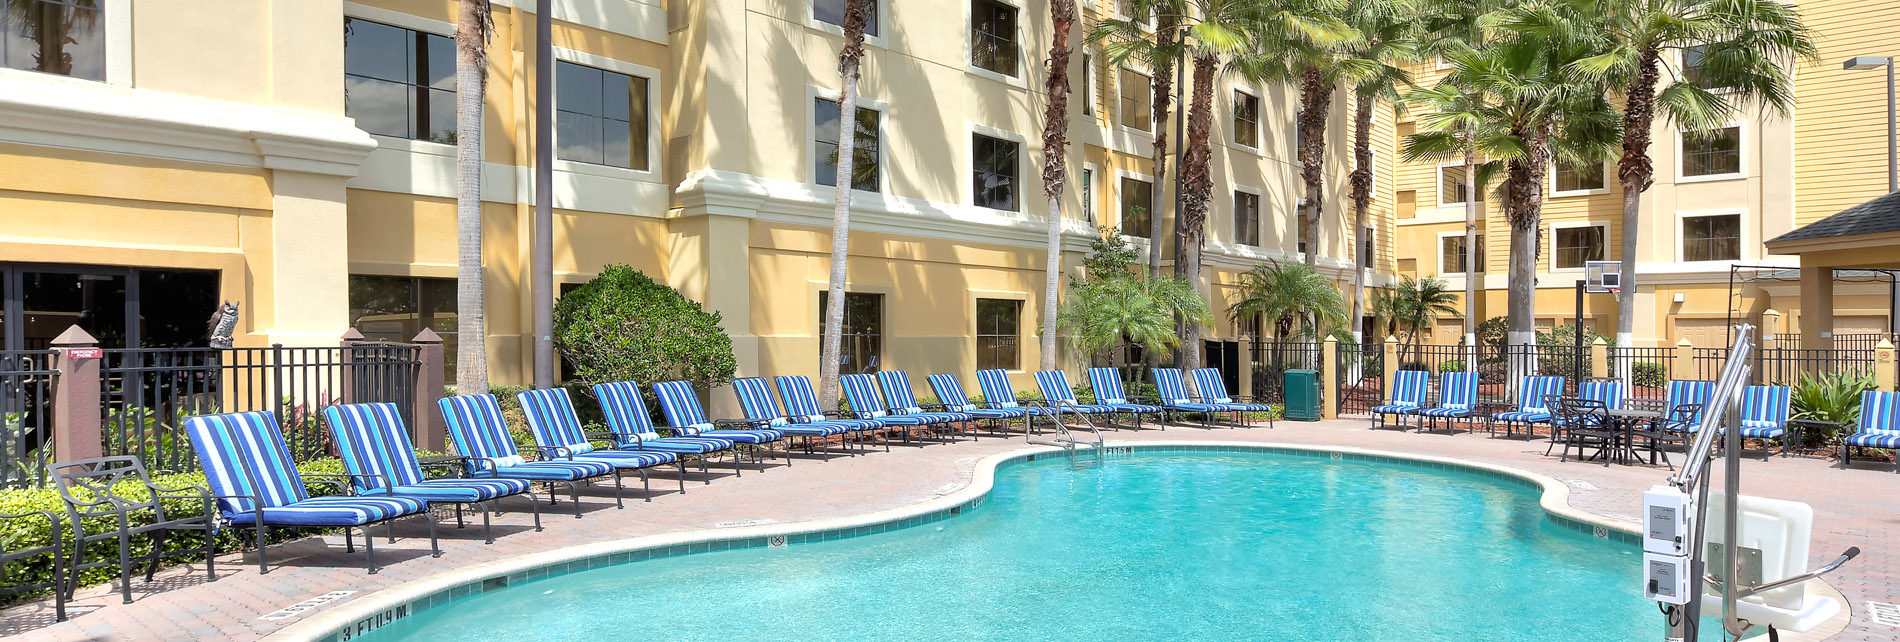 hotels with full kitchens in orlando florida kitchen cart island staysky suites i drive stay sky resorts